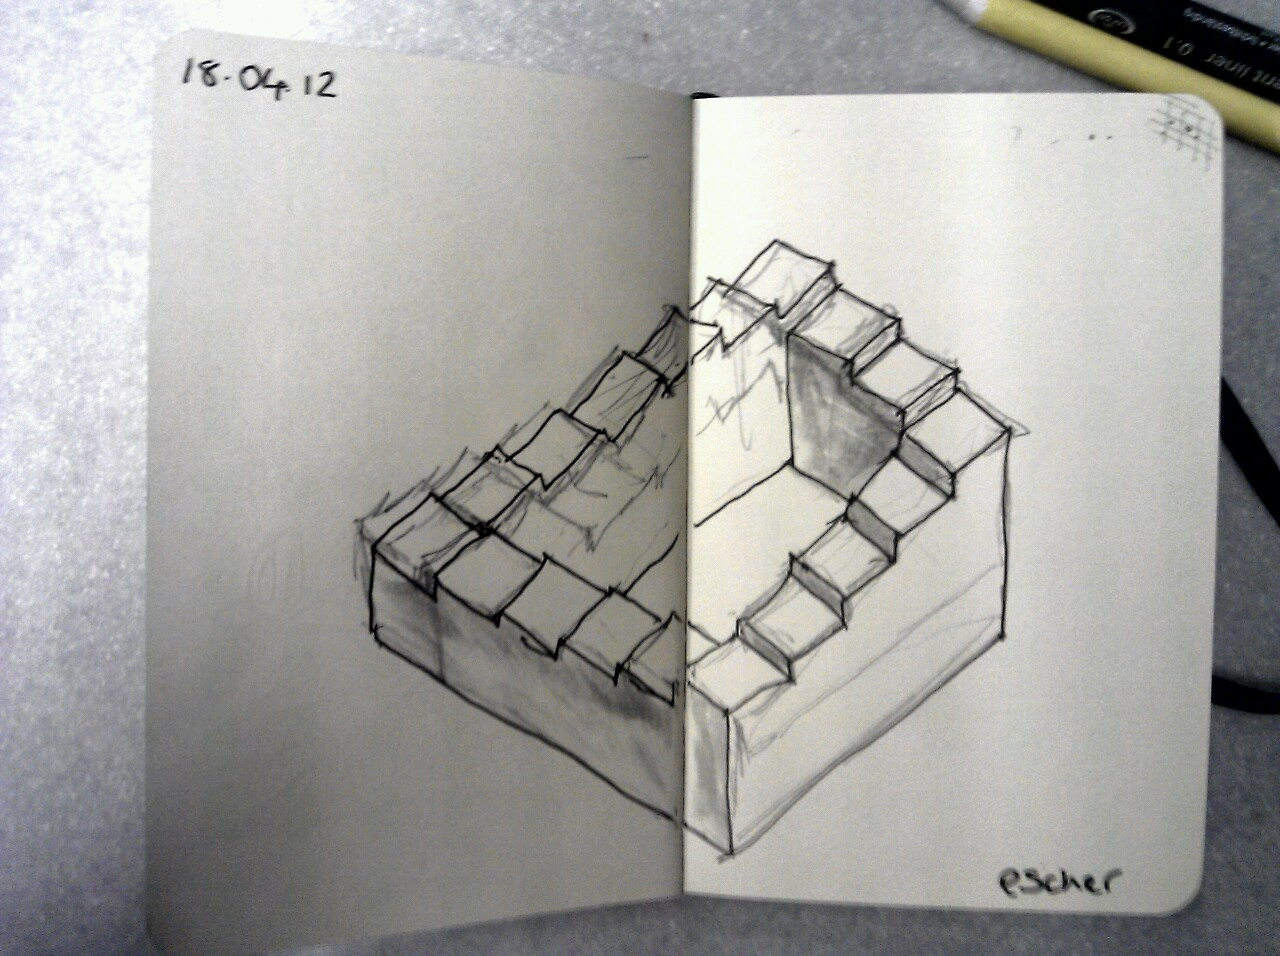 365 drawings later … day 78 … escher (a wobbly train version)